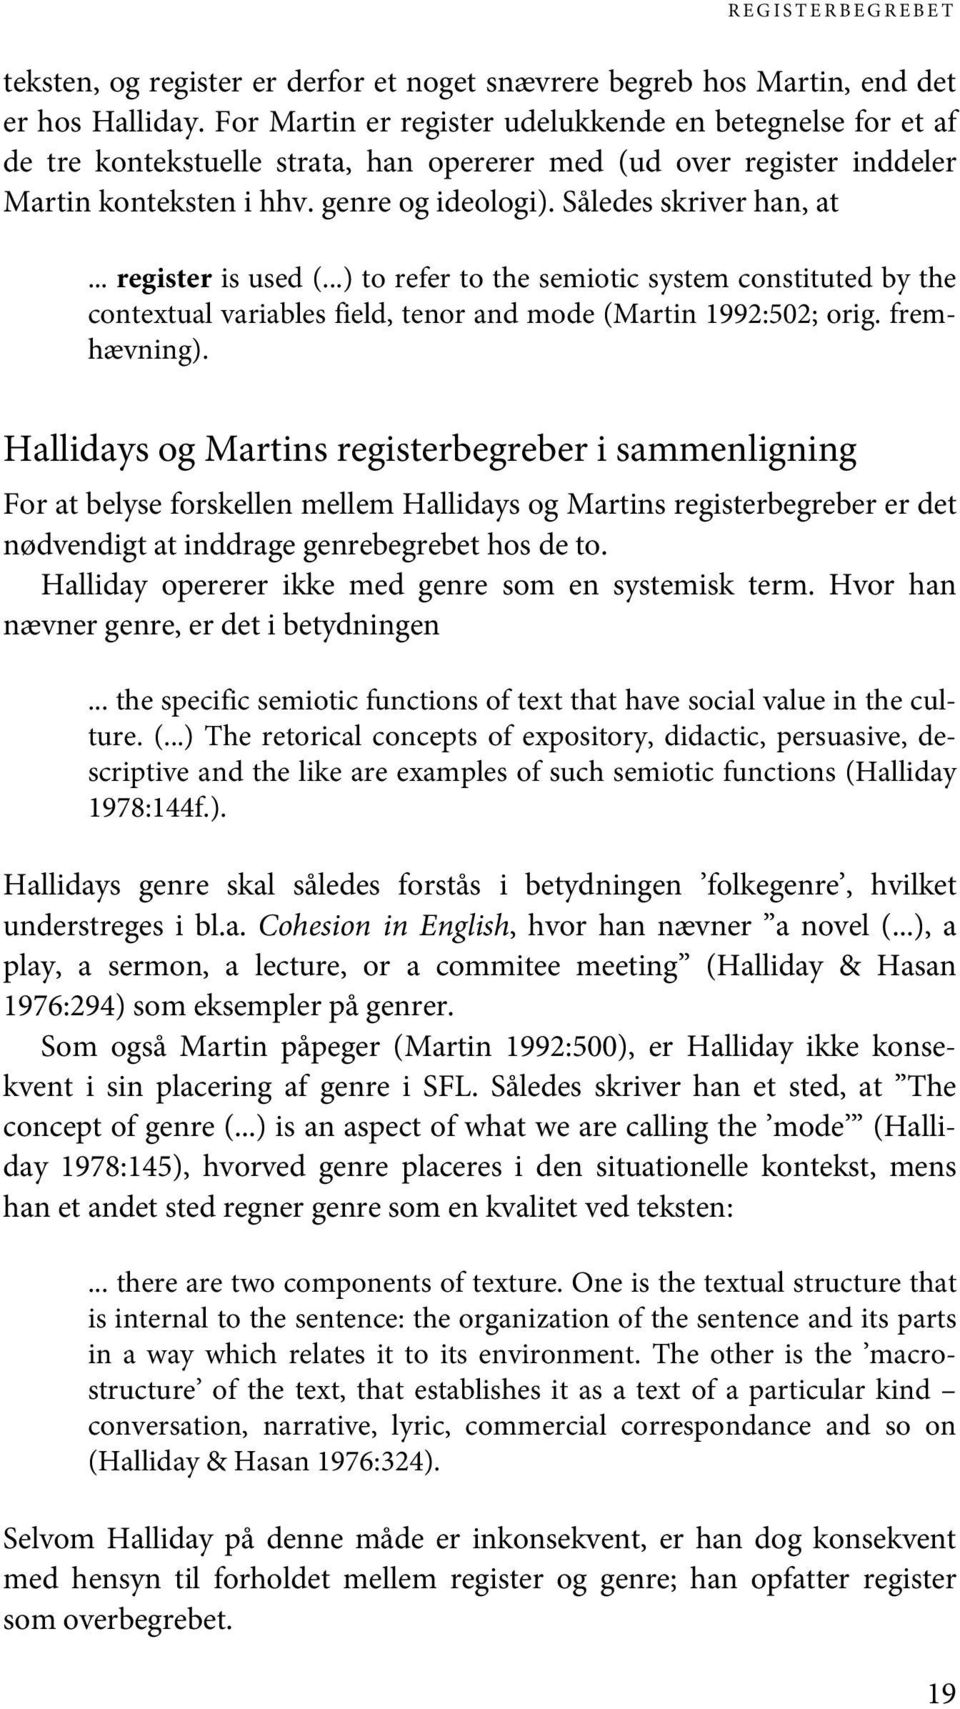 Således skriver han, at... register is used (...) to refer to the semiotic system constituted by the contextual variables field, tenor and mode (Martin 1992:502; orig. fremhævning).